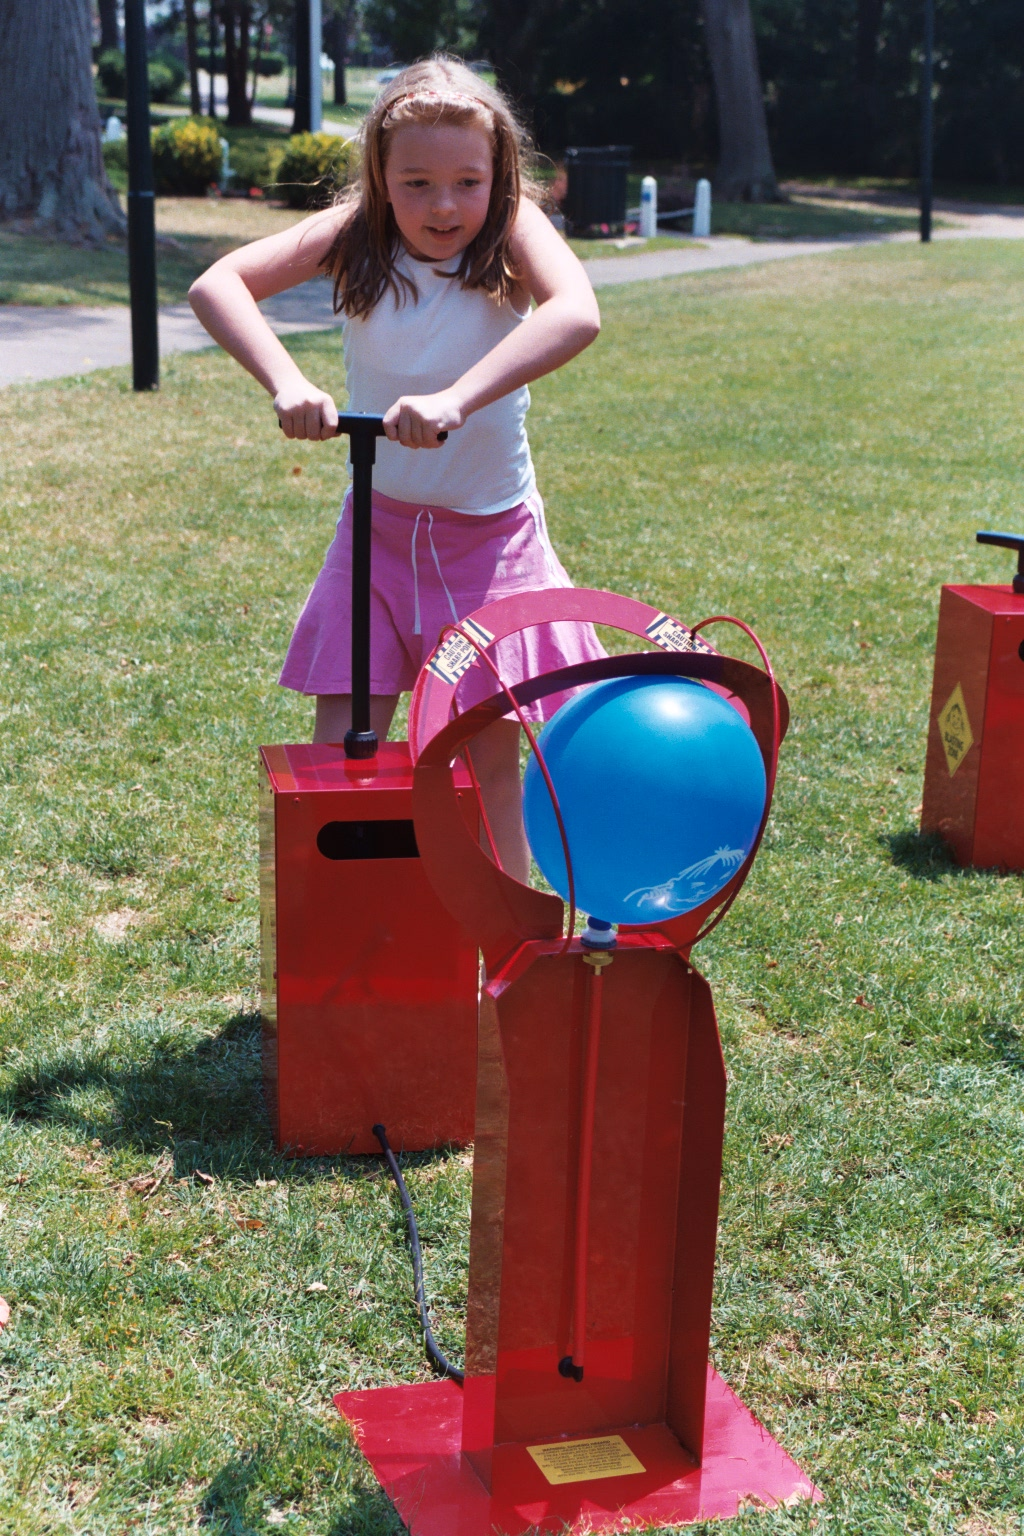 A young girl is pumping away, having fun playing with Boom Blasters she rented from Bette's.